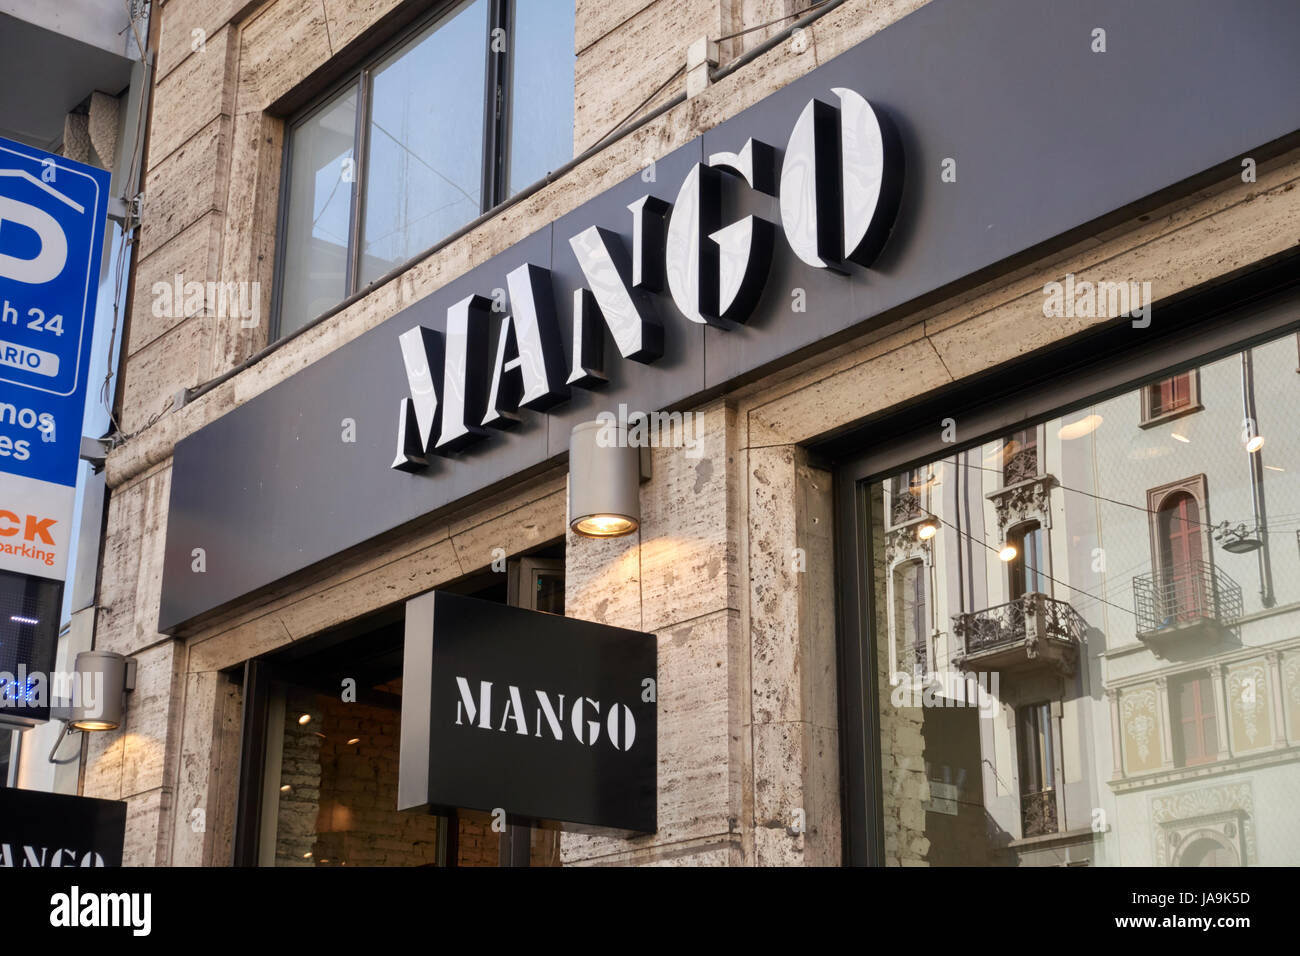 Mango brand store in Milano, Italy Stock Photo: 144042121 - Alamy